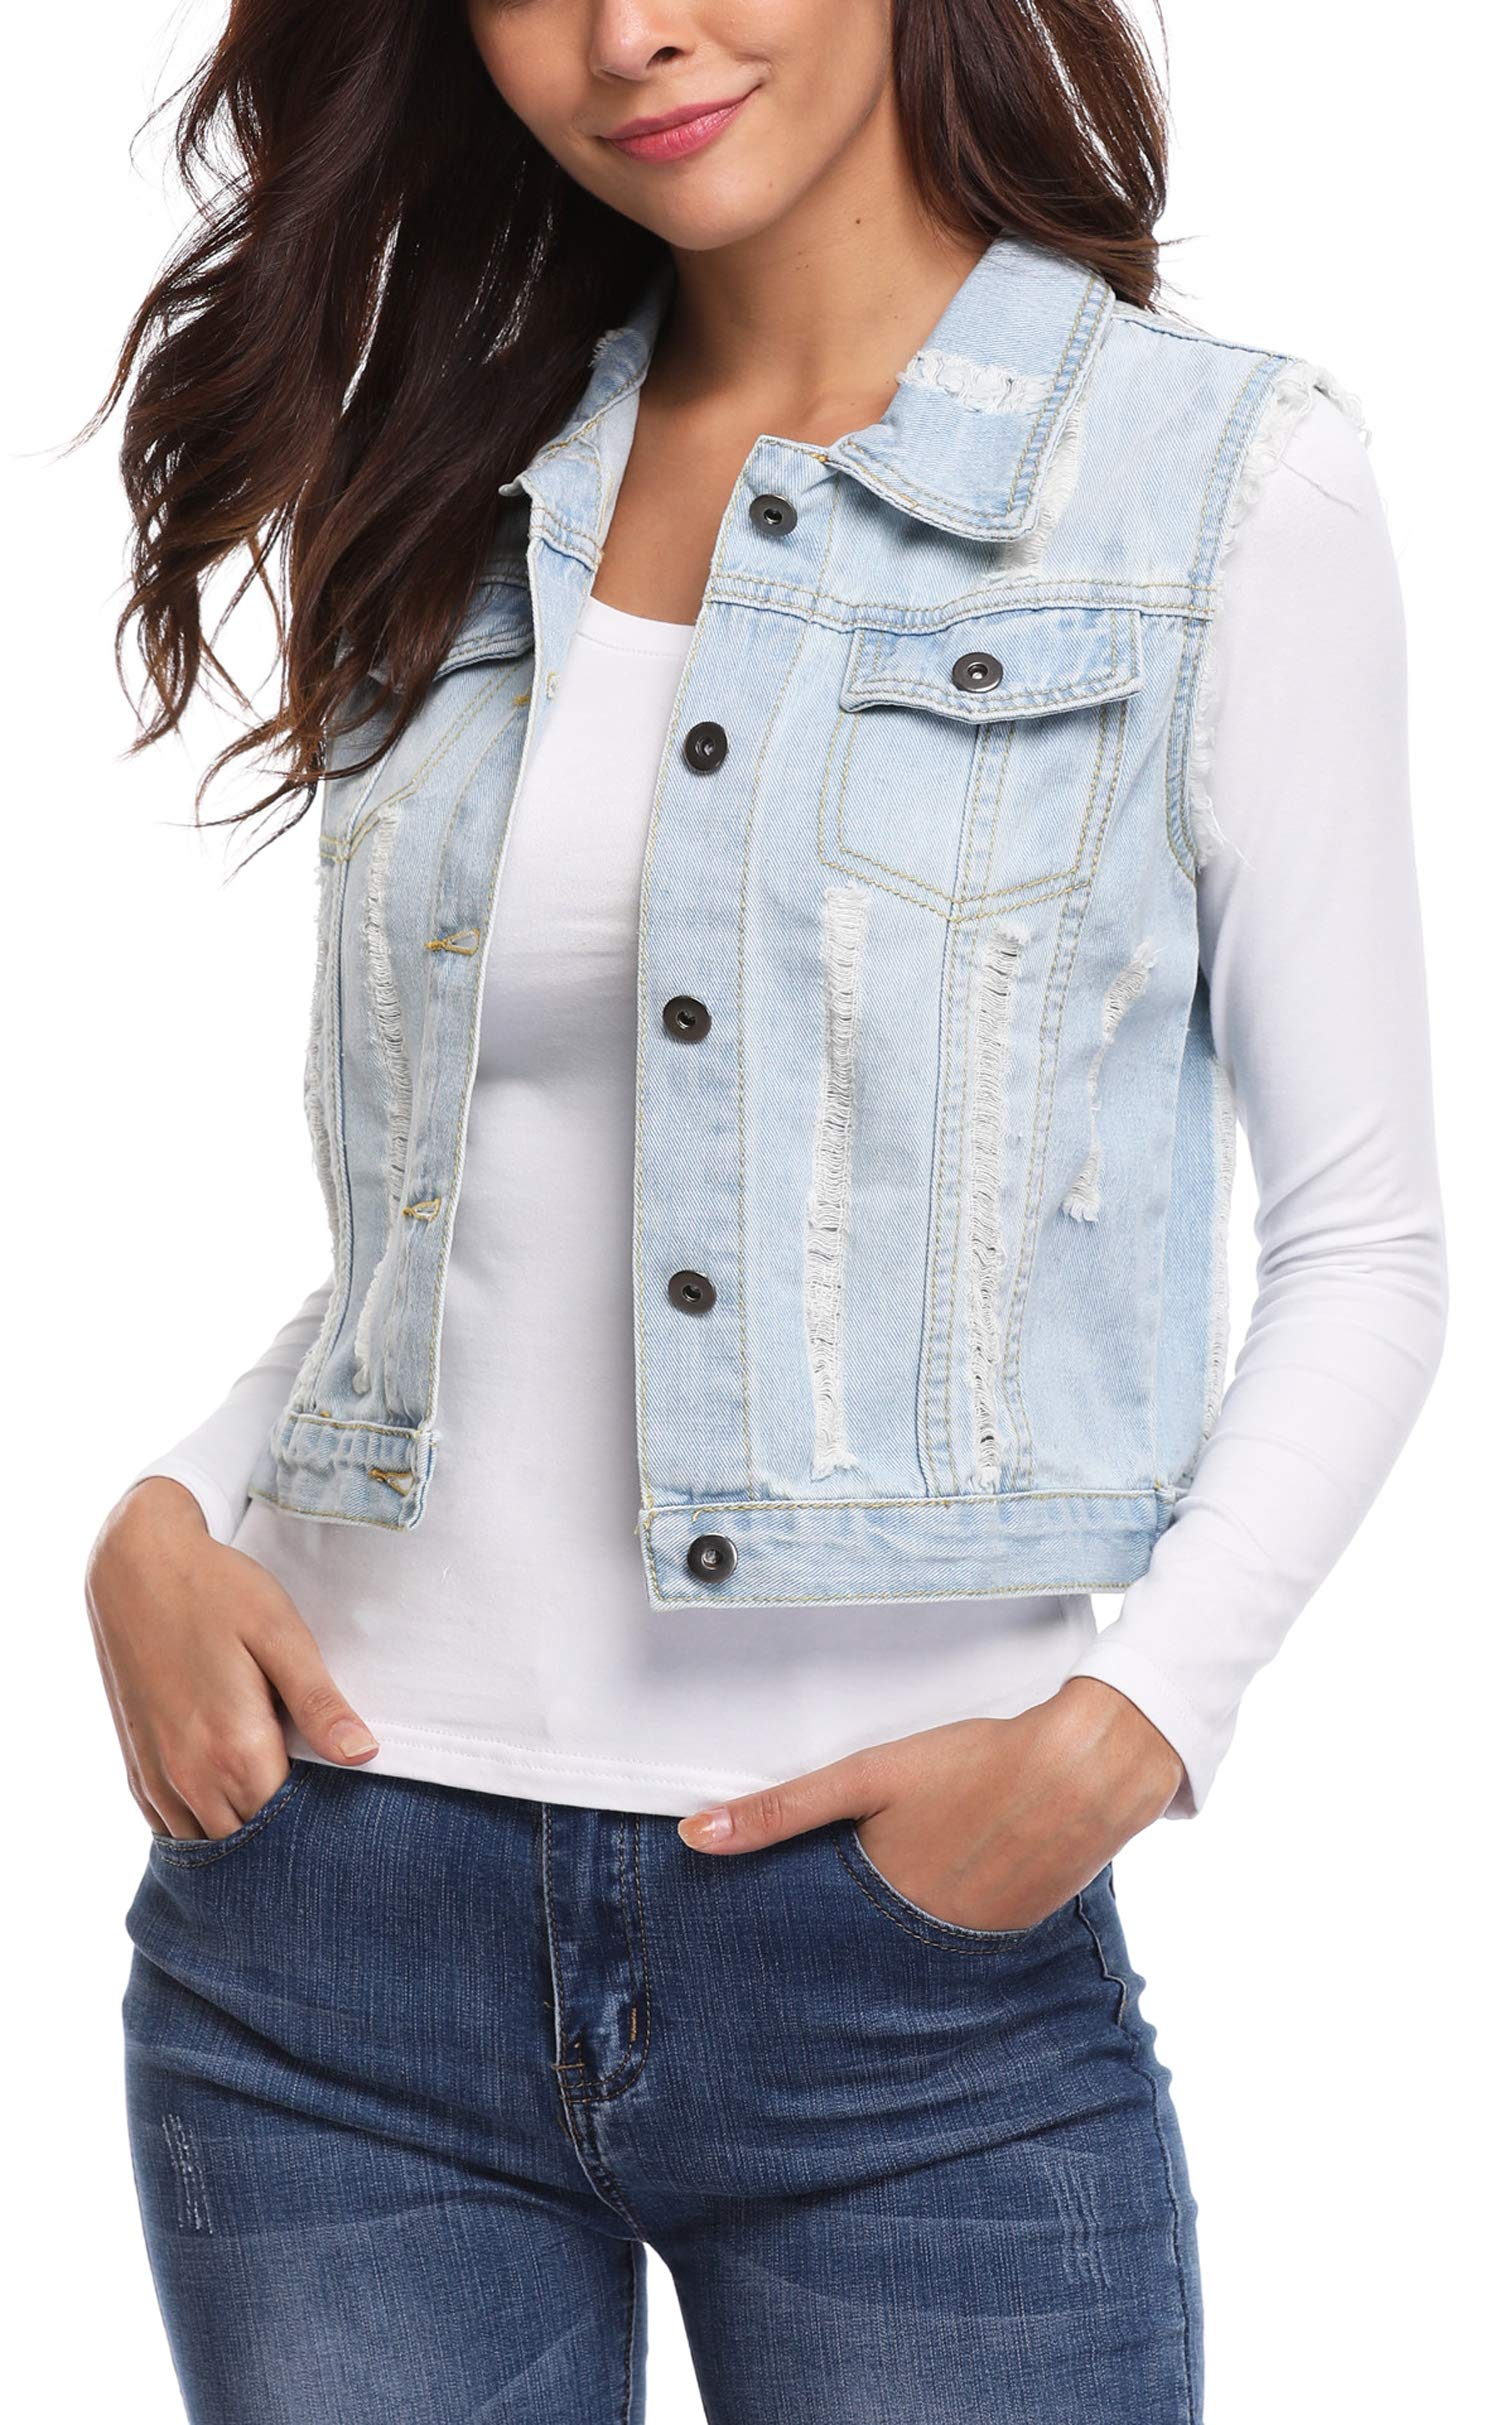 MISS MOLY Women's Sleeveless Denim Jacket Vest Turn Down Collar Buttoned Frayed Washed w 2 Chest Flap Pockets Light Blue XL by MISS MOLY (Image #4)